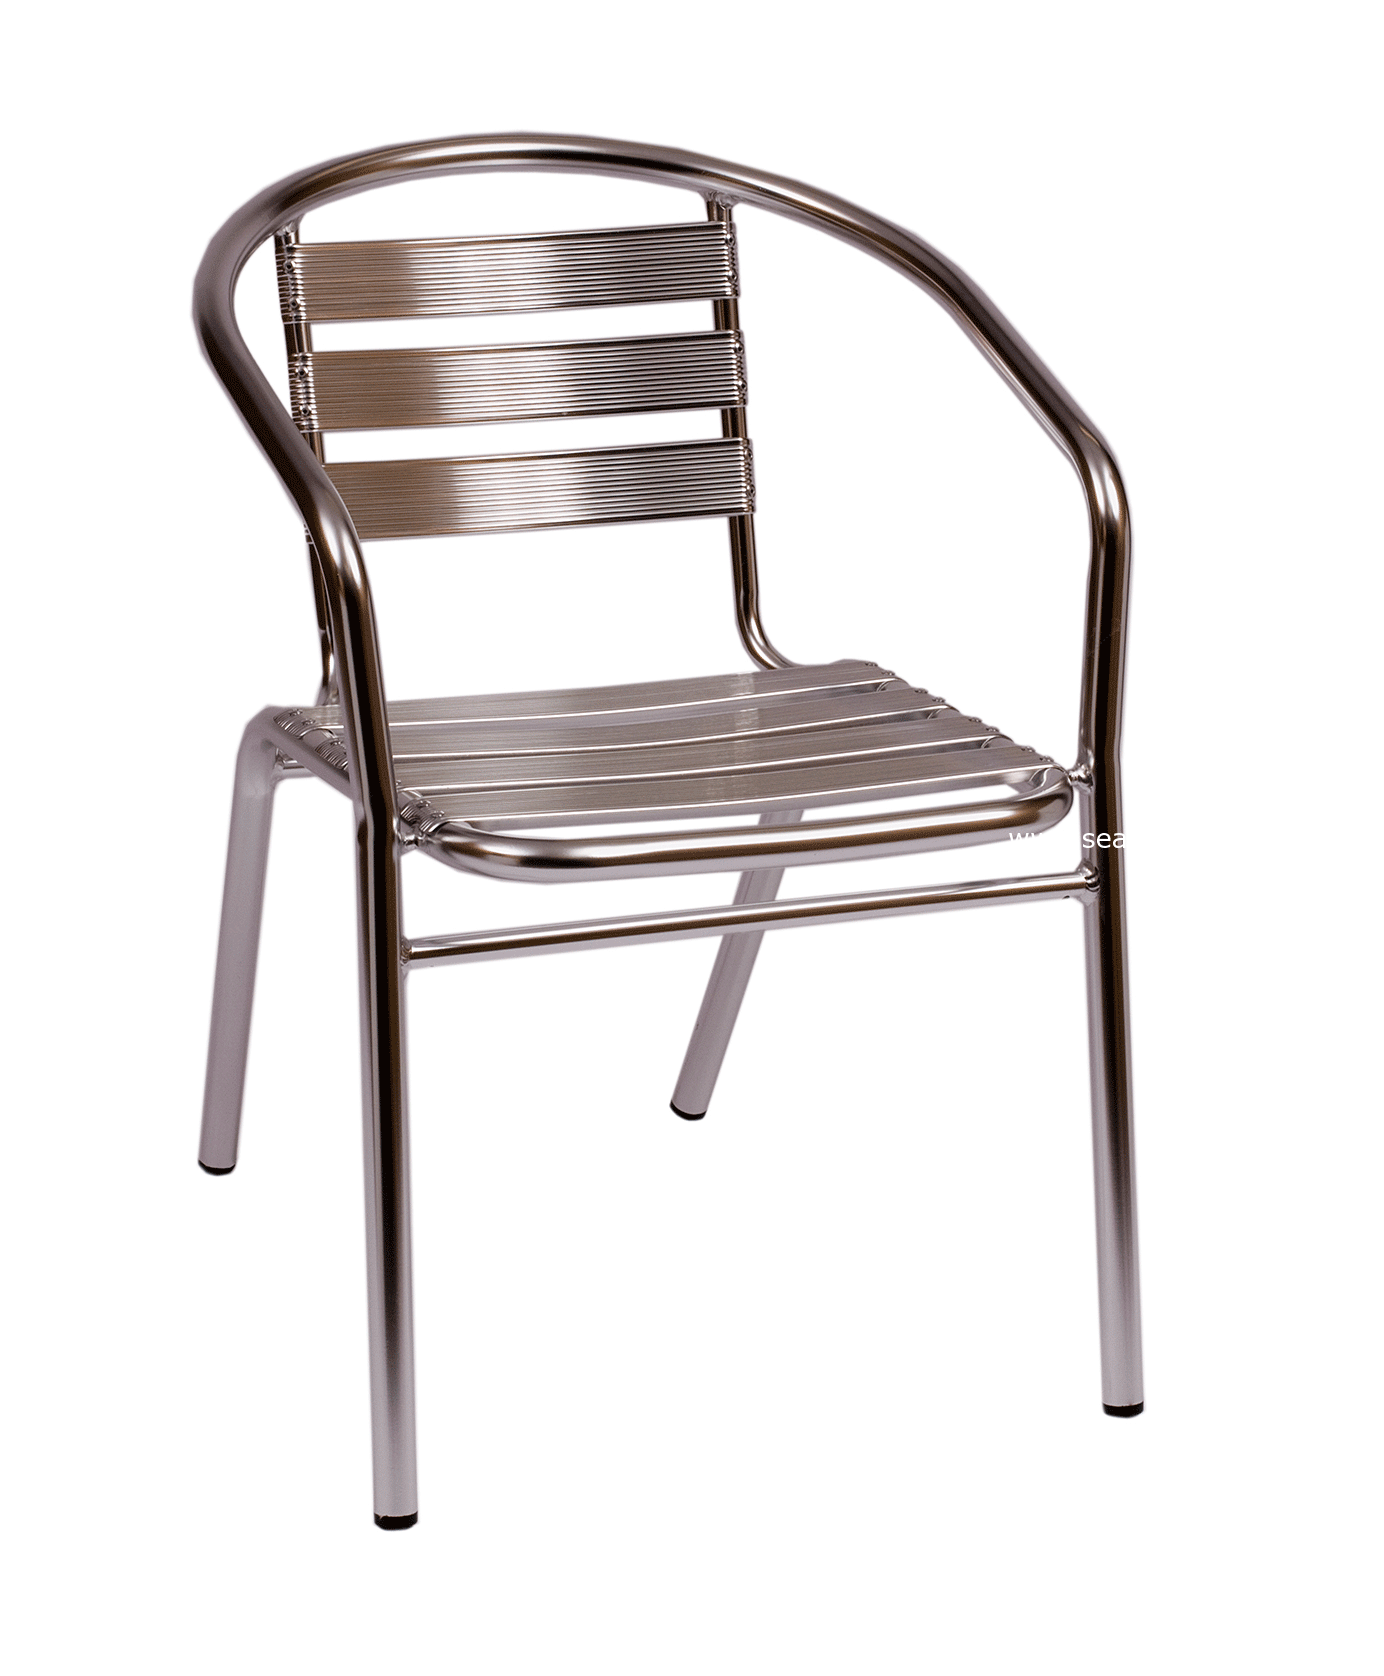 Parma All Weather Aluminum Stacking Armchair : MS0021 from seatingconnection.com size 1384 x 1676 png 274kB